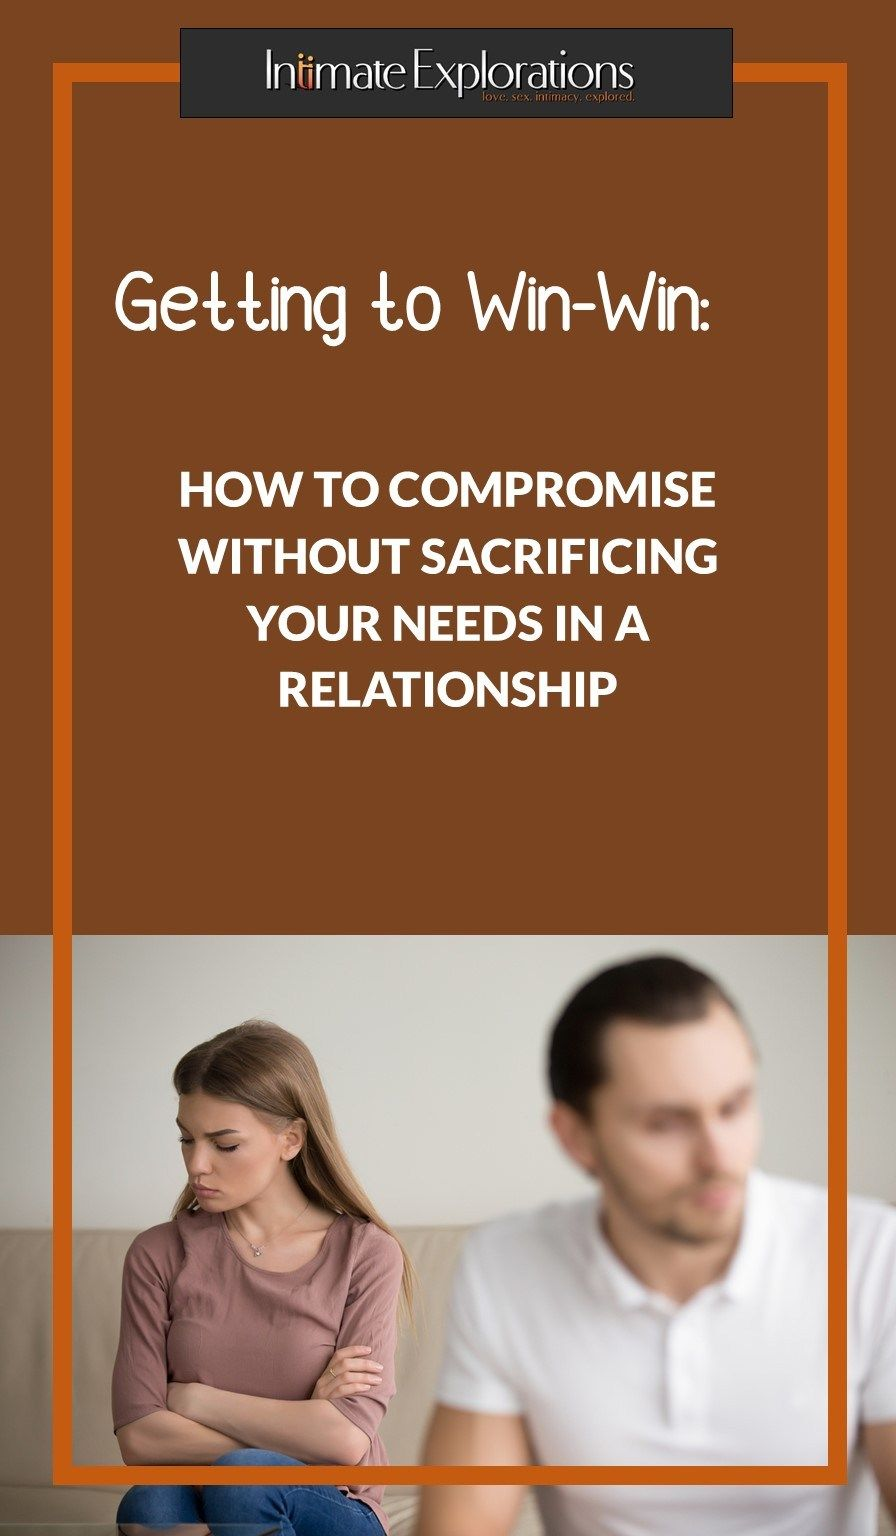 How to Compromise photo